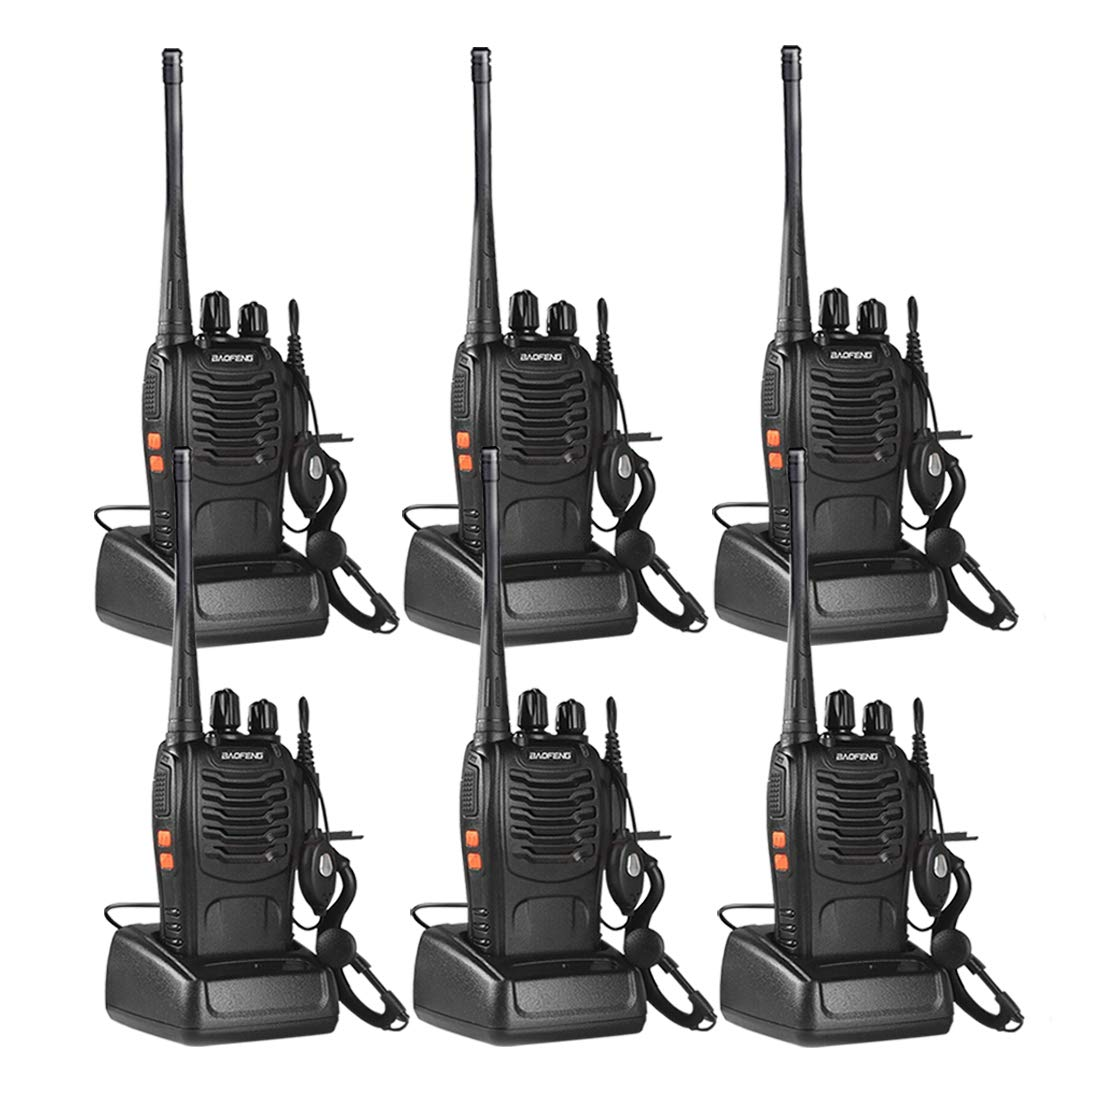 Walkie Talkies for Adult, Rechargeable Two Way Radios Long Range with Original Earpiece by Sunreal Pack of 6